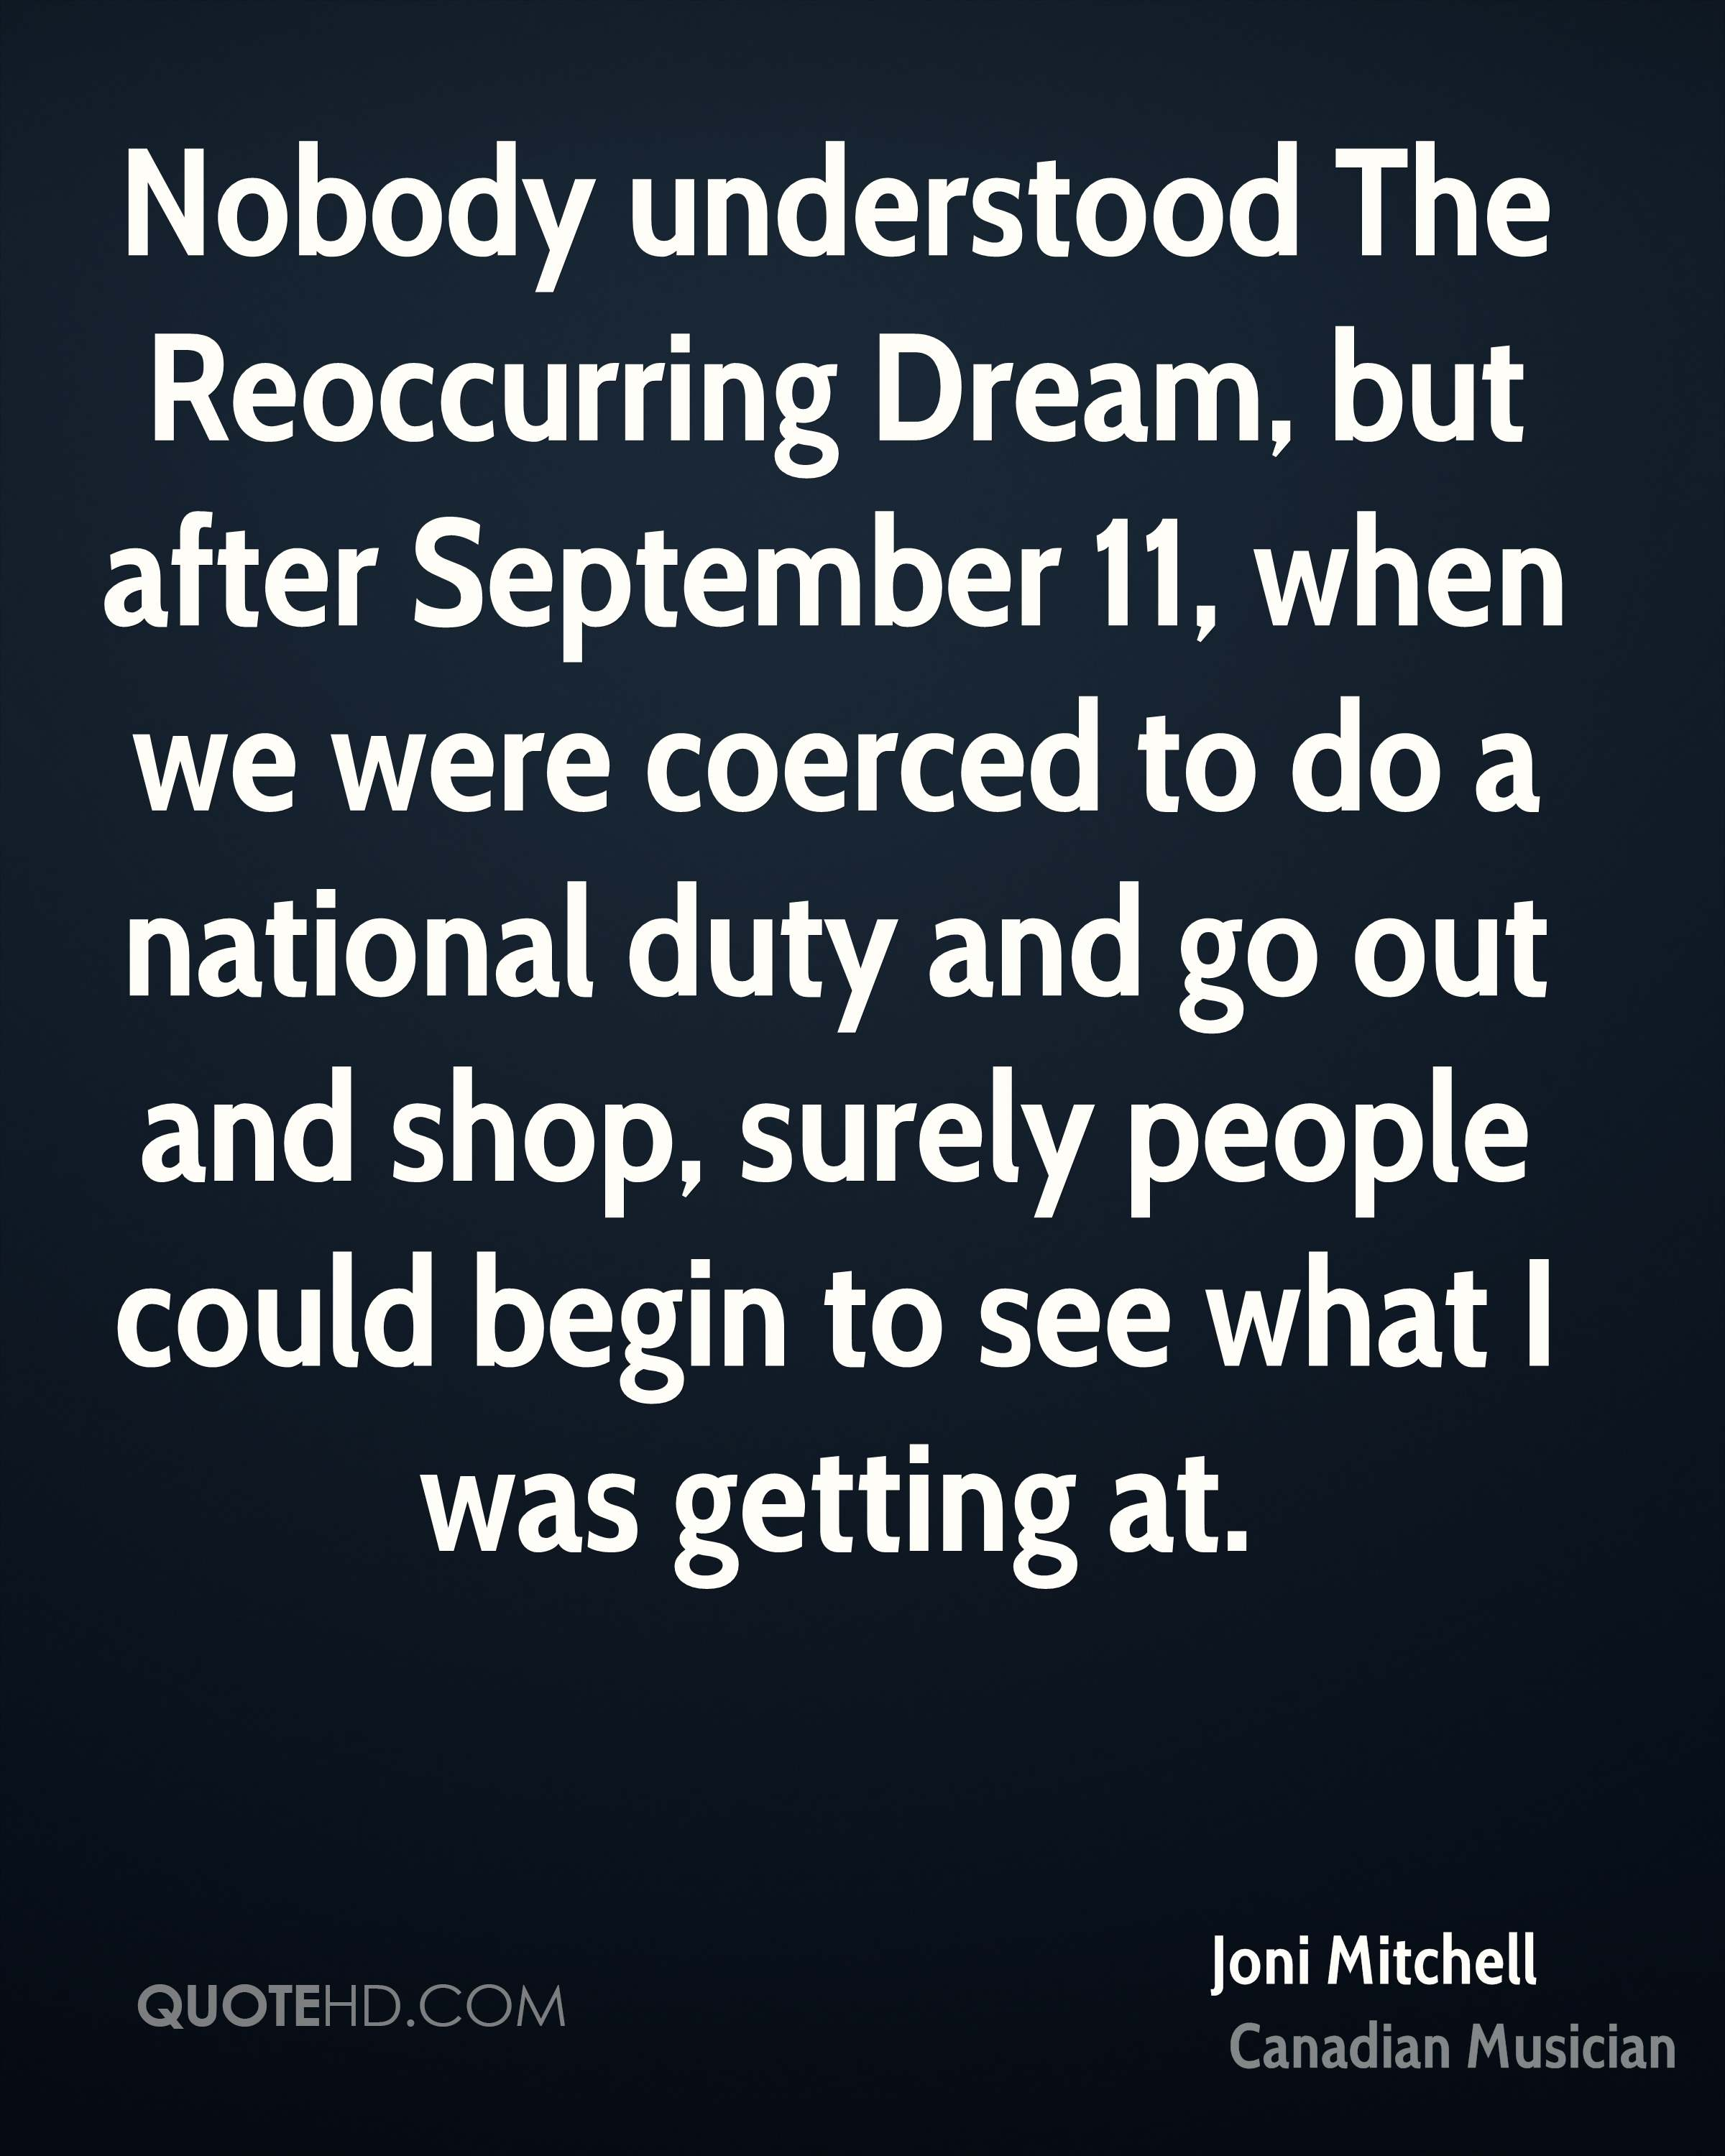 Nobody understood The Reoccurring Dream, but after September 11, when we were coerced to do a national duty and go out and shop, surely people could begin to see what I was getting at.